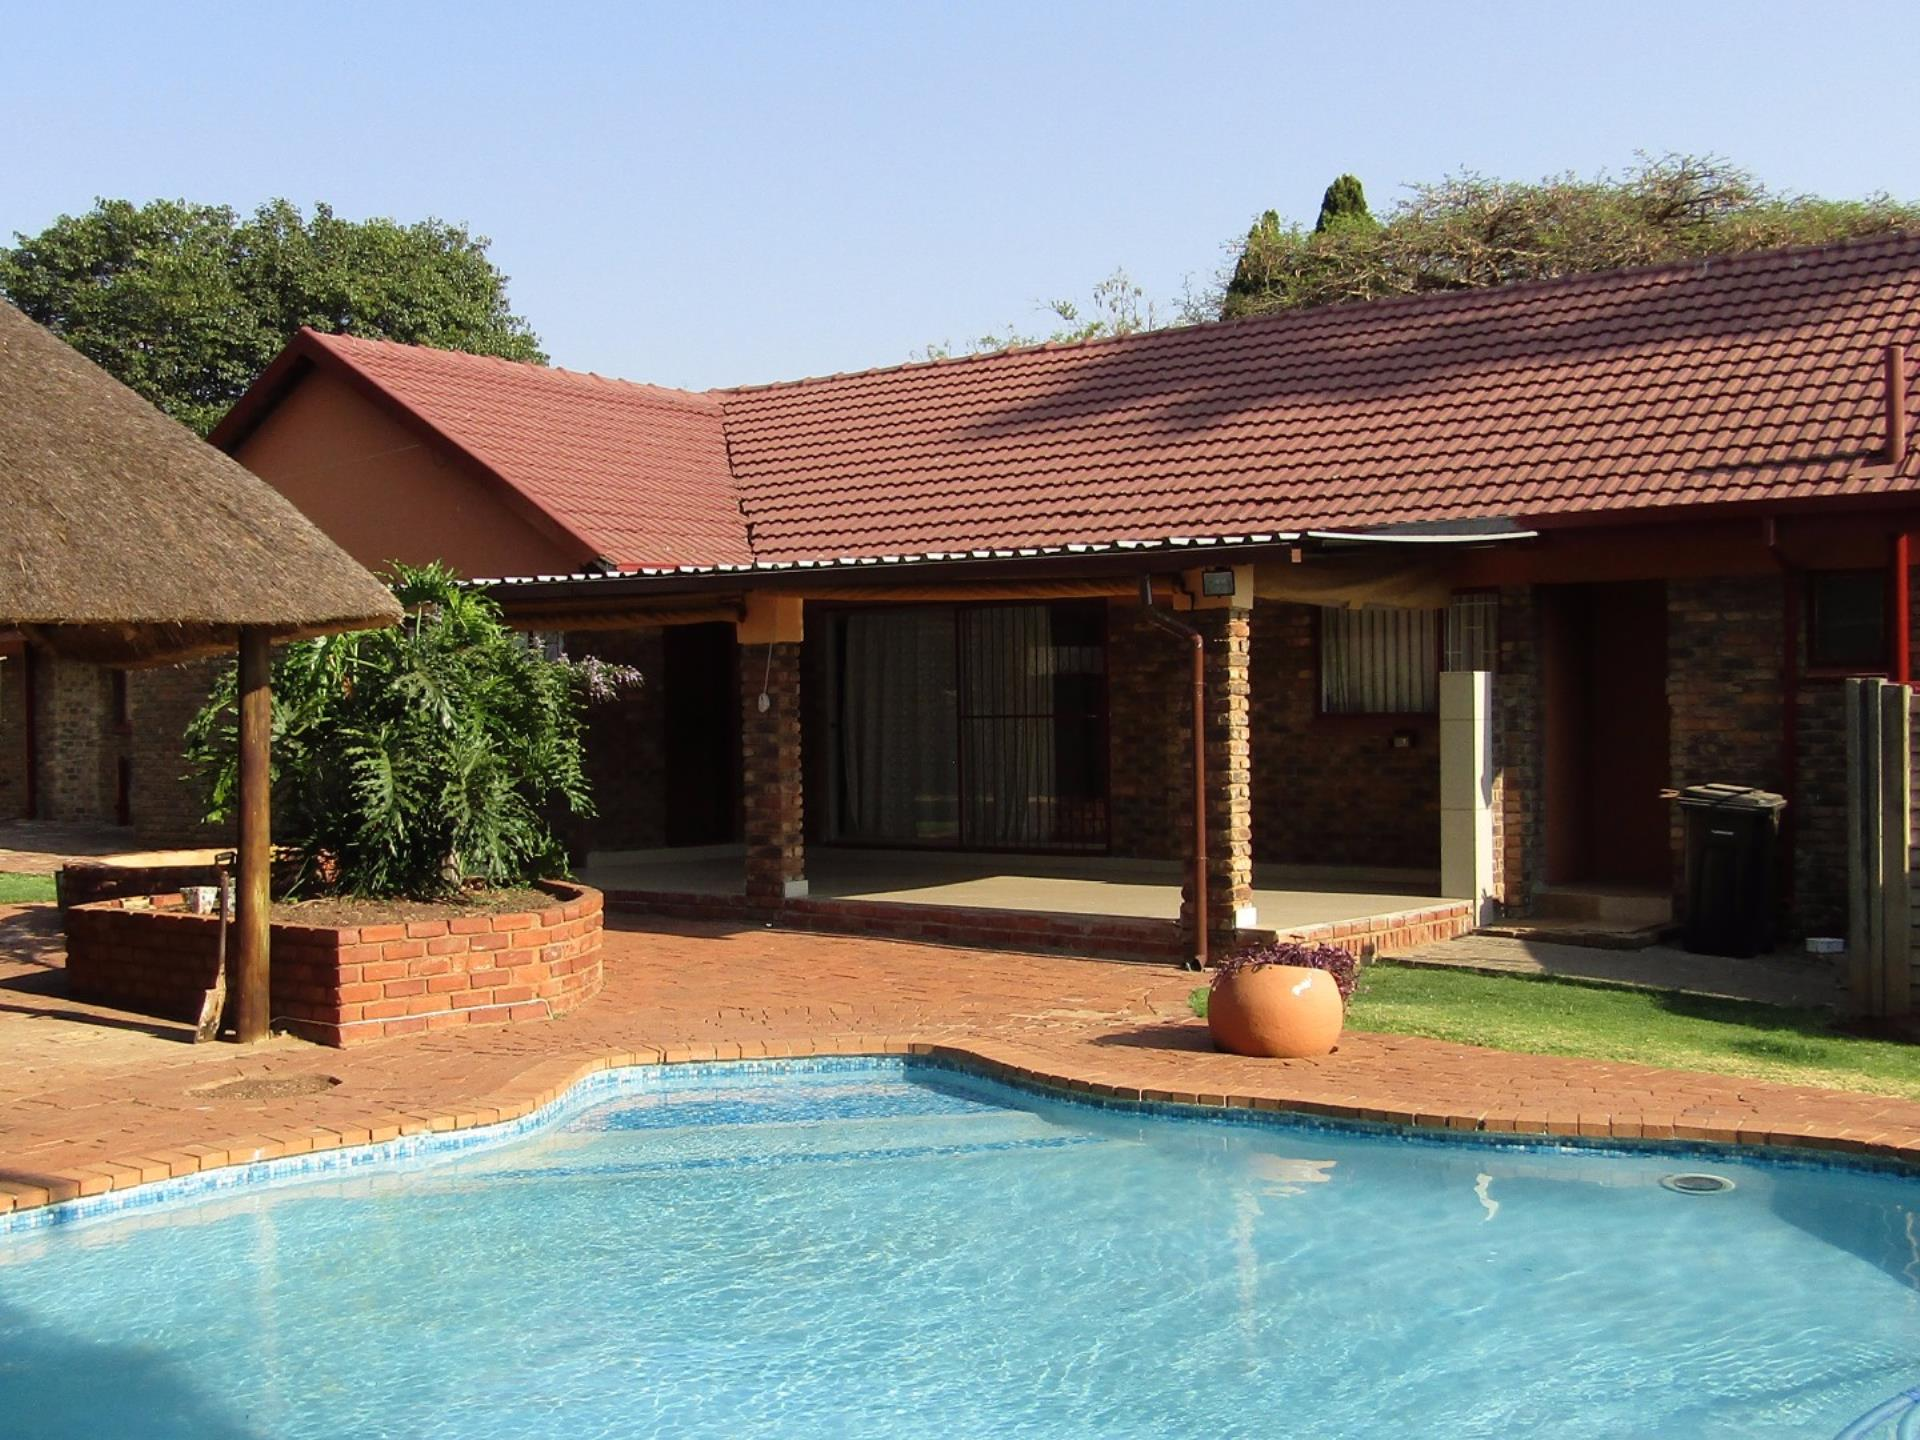 House to rent in garsfontein pretoria gauteng for r